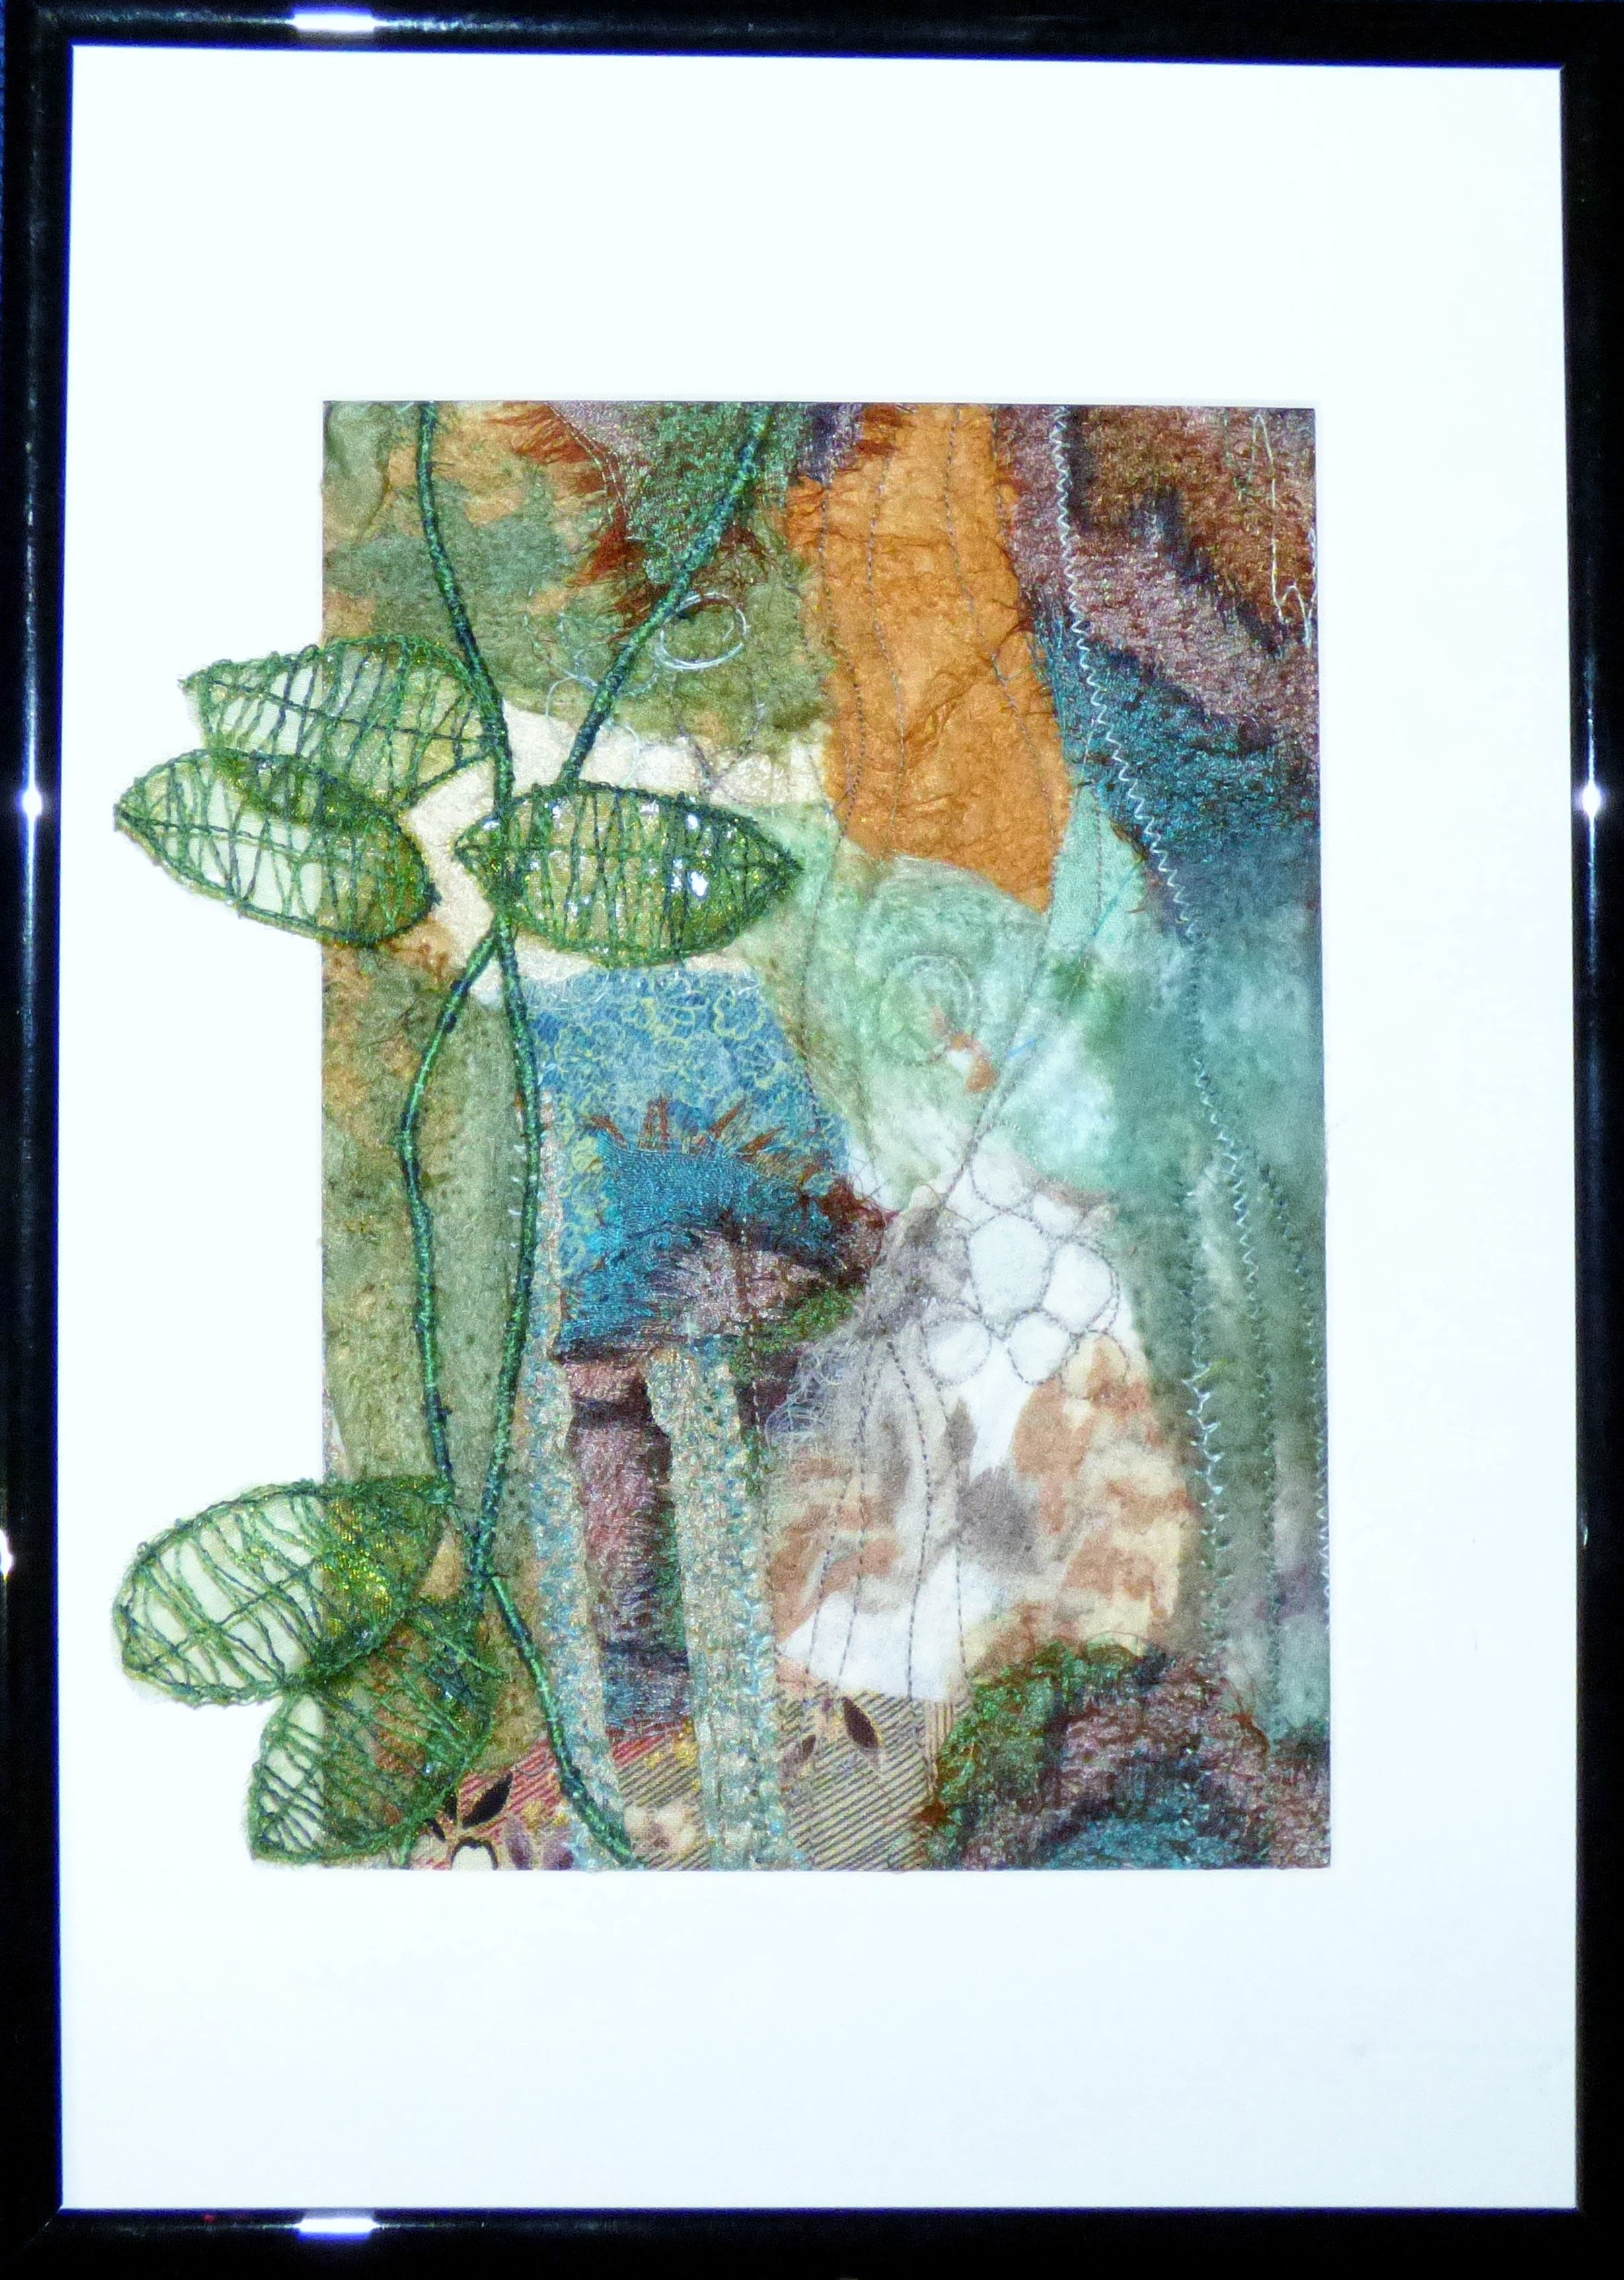 TREE BARK BY Jackie Greasley, Contemporary Threads group, March 2020